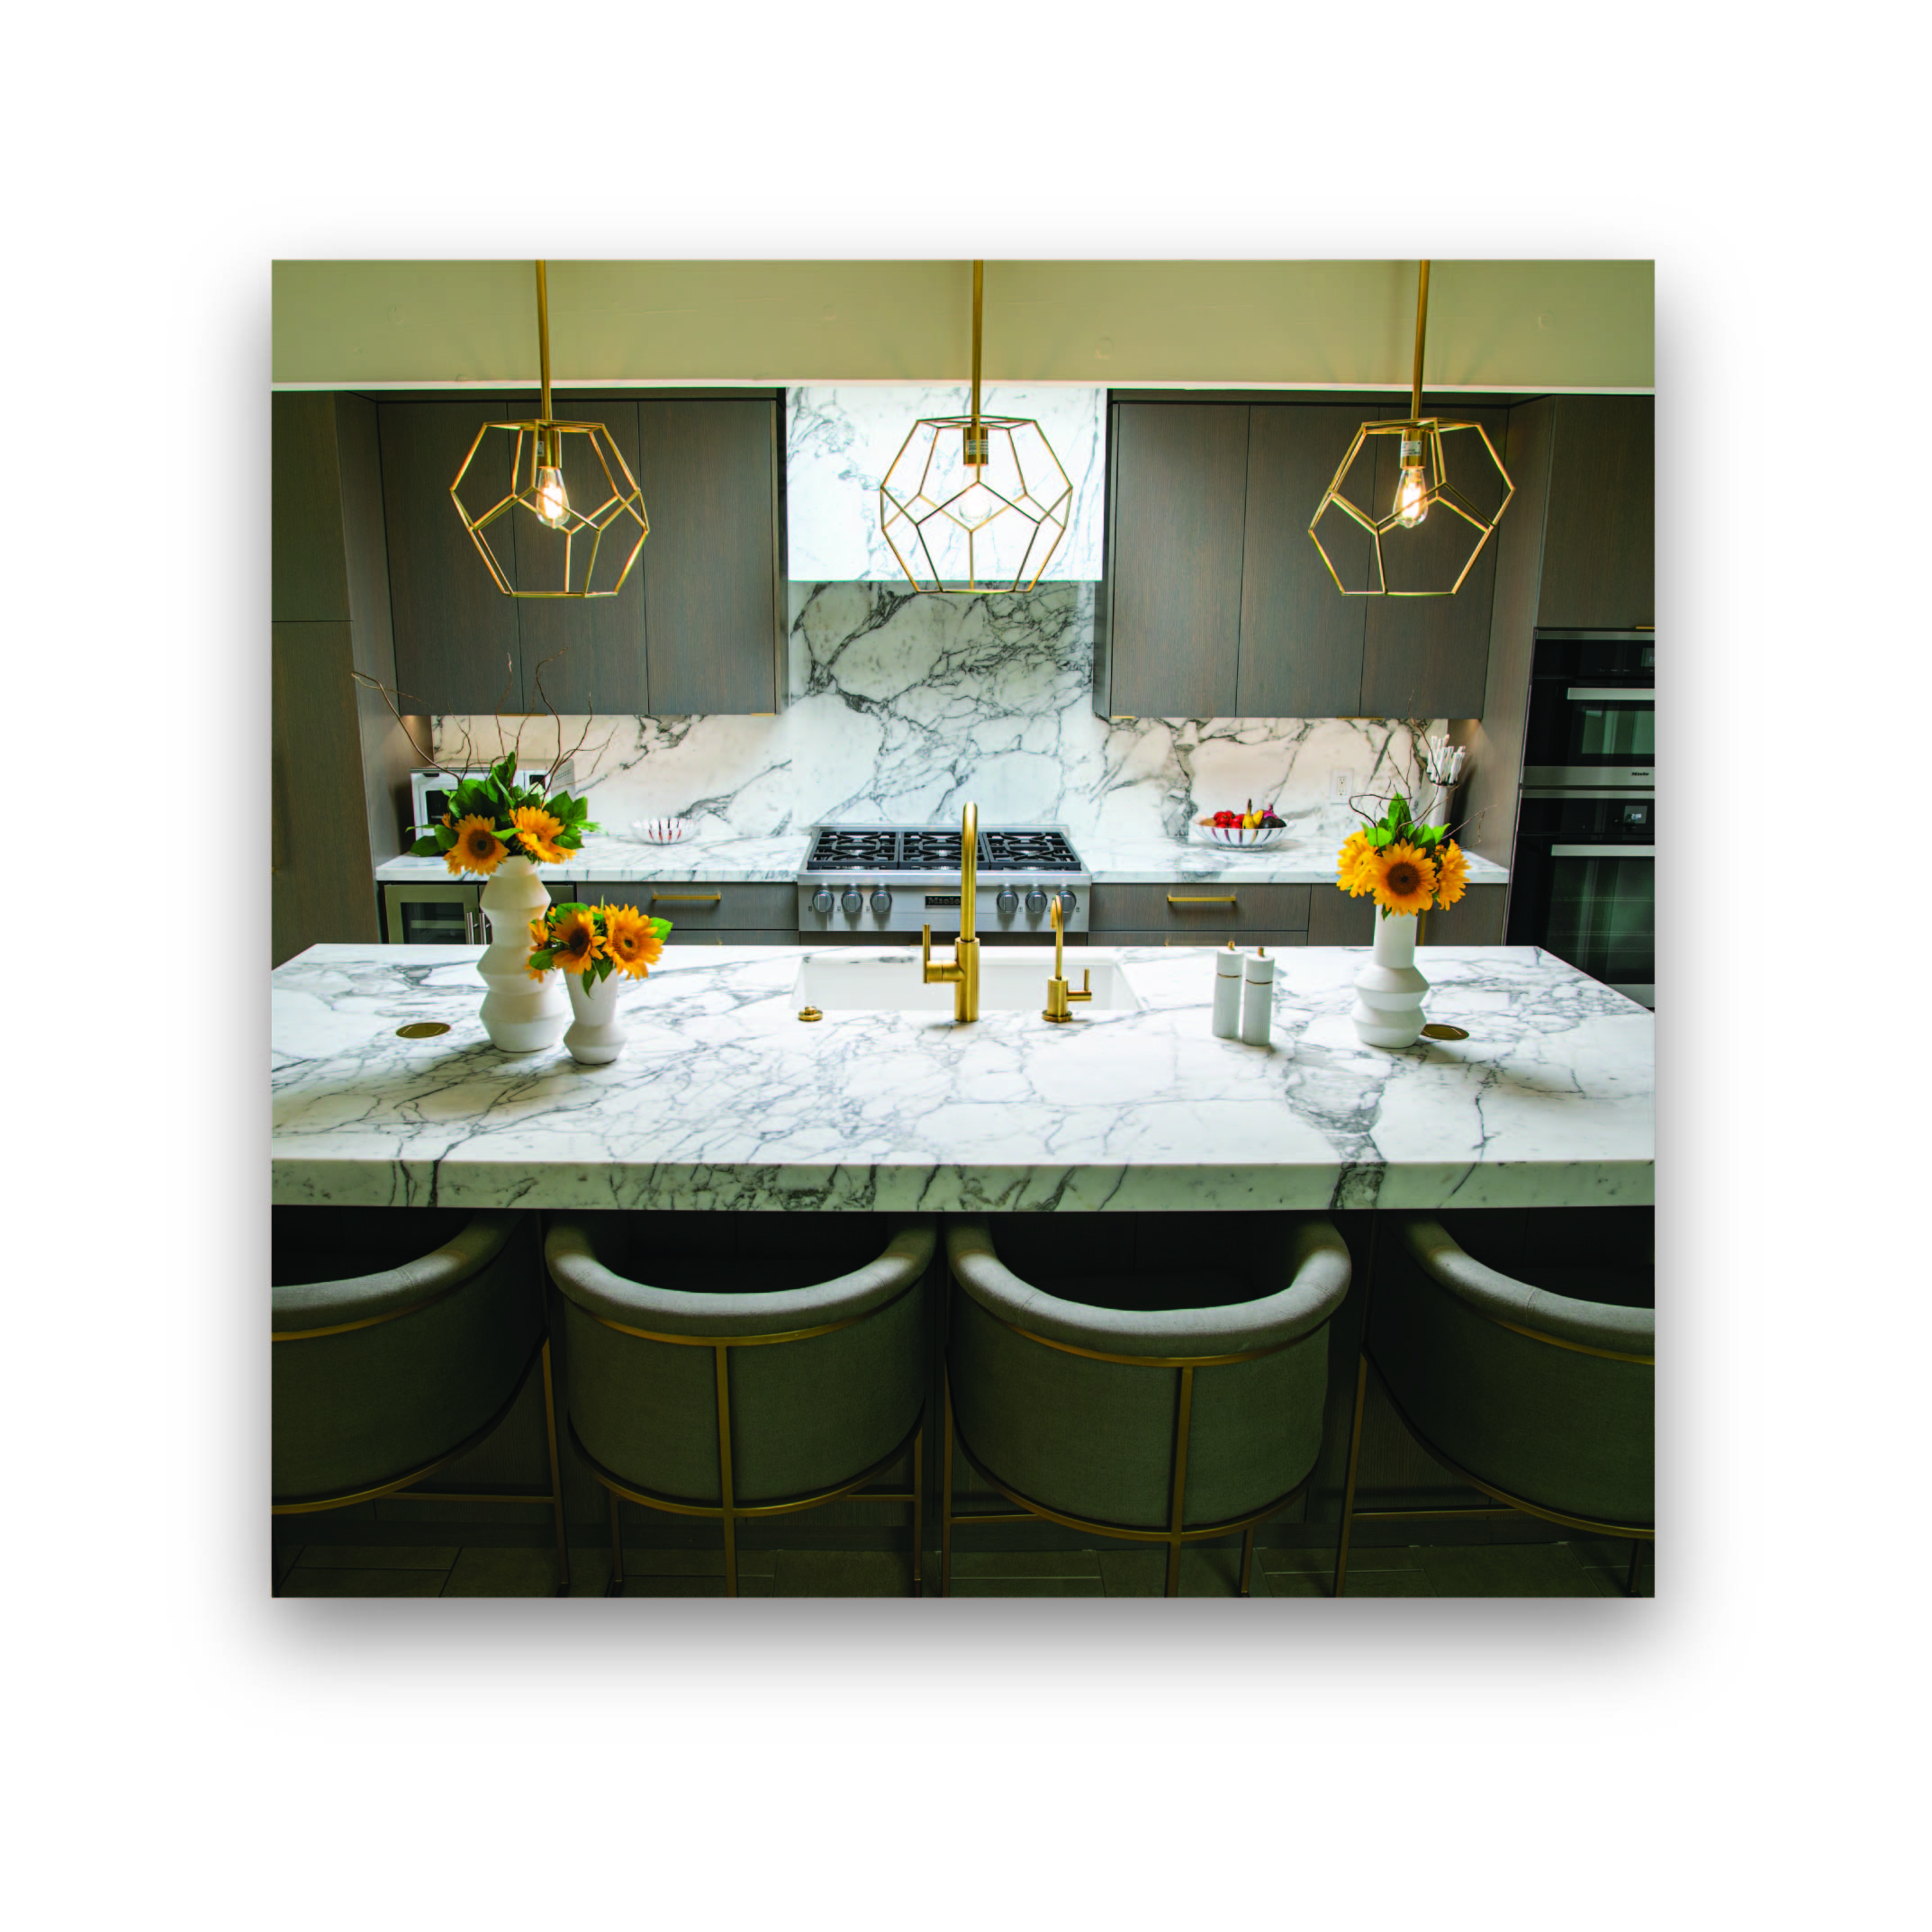 Inspiration, Gallery, Gallery Photos, architecture; natural stone, Porcelain, Quartz; Kitchen counter, Kitchen Backsplash